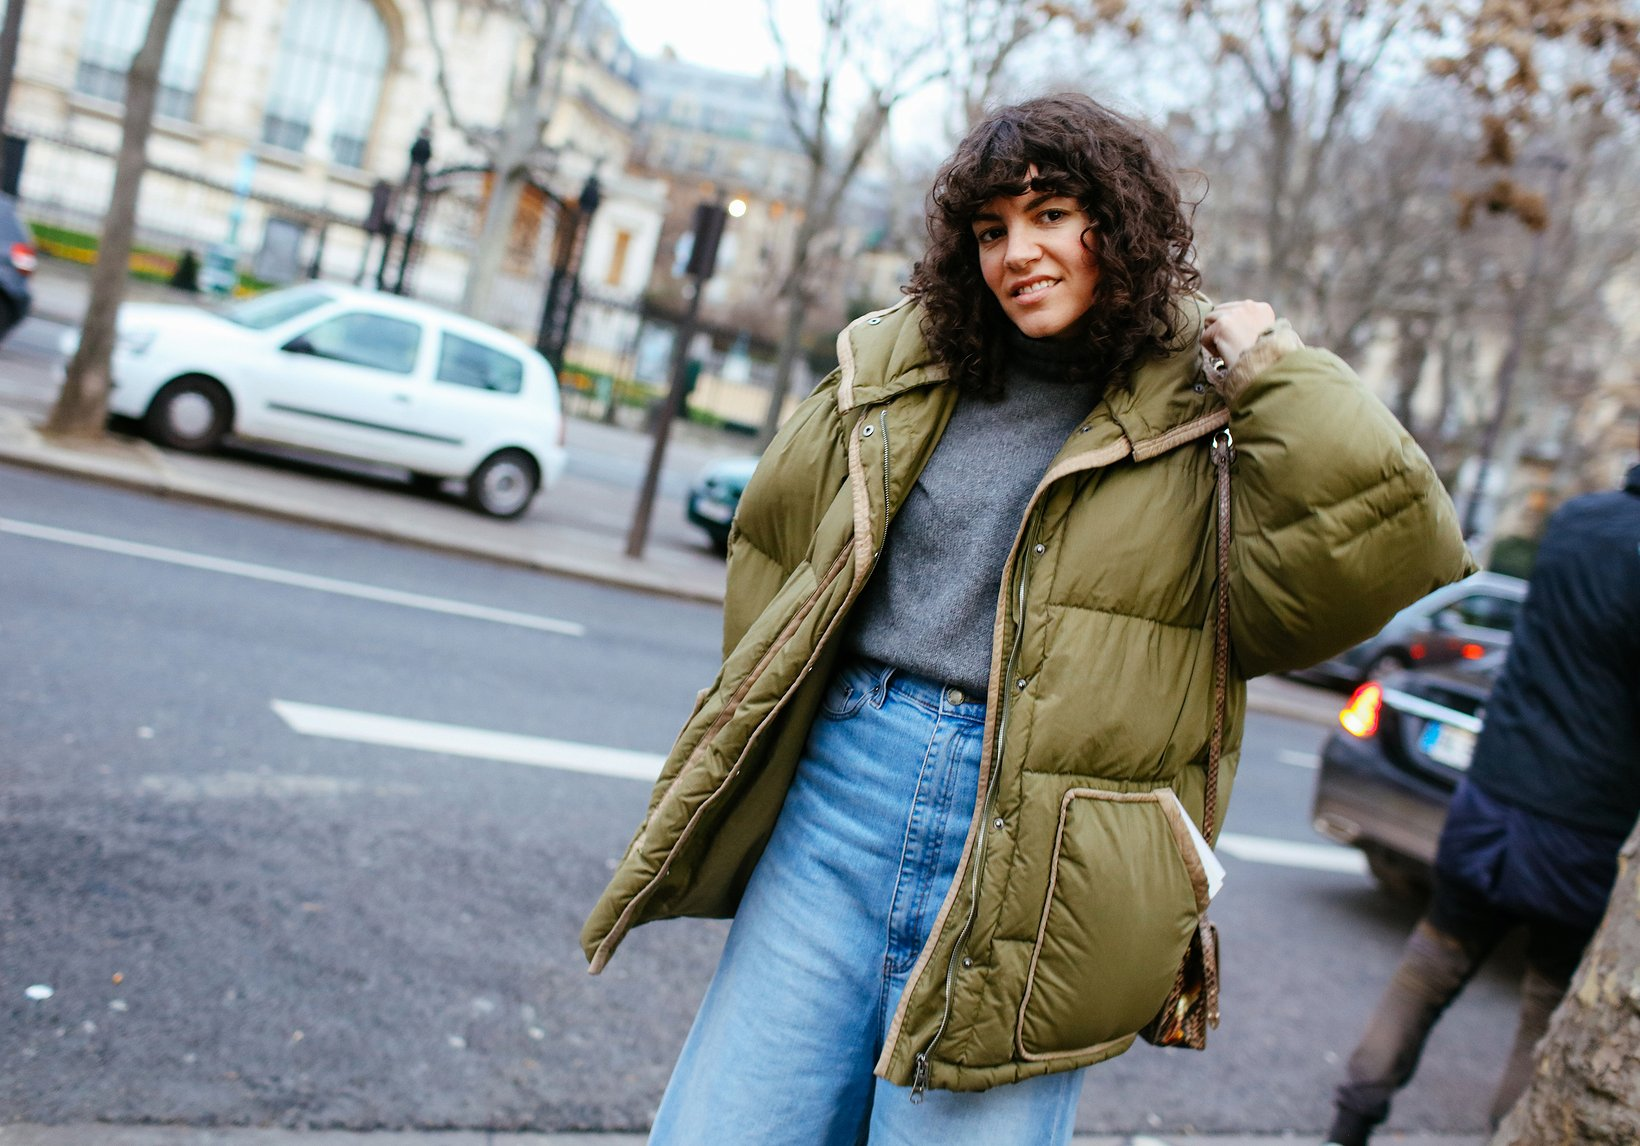 fav-looks-from-paris-fashionwonderer (33)